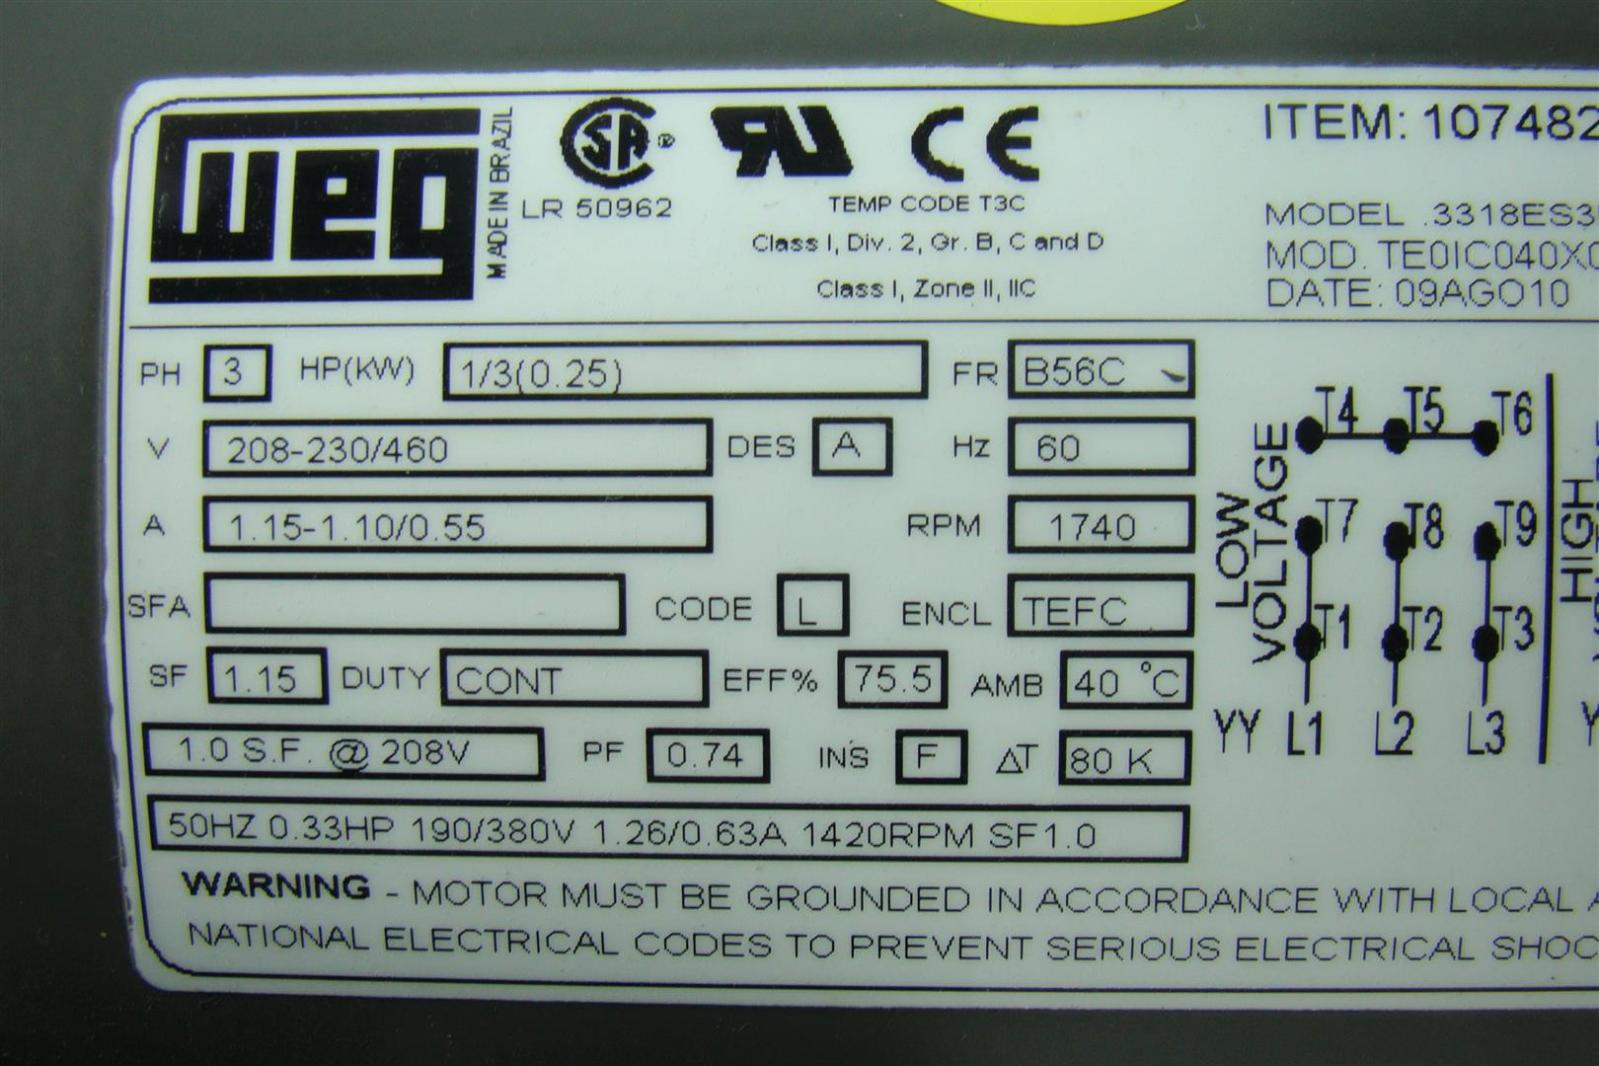 Ups Conveyor Wiring Diagram on ups electrical, ups warehouse inside of, ups container, ups machine, ups facility, ups box, ups printing,